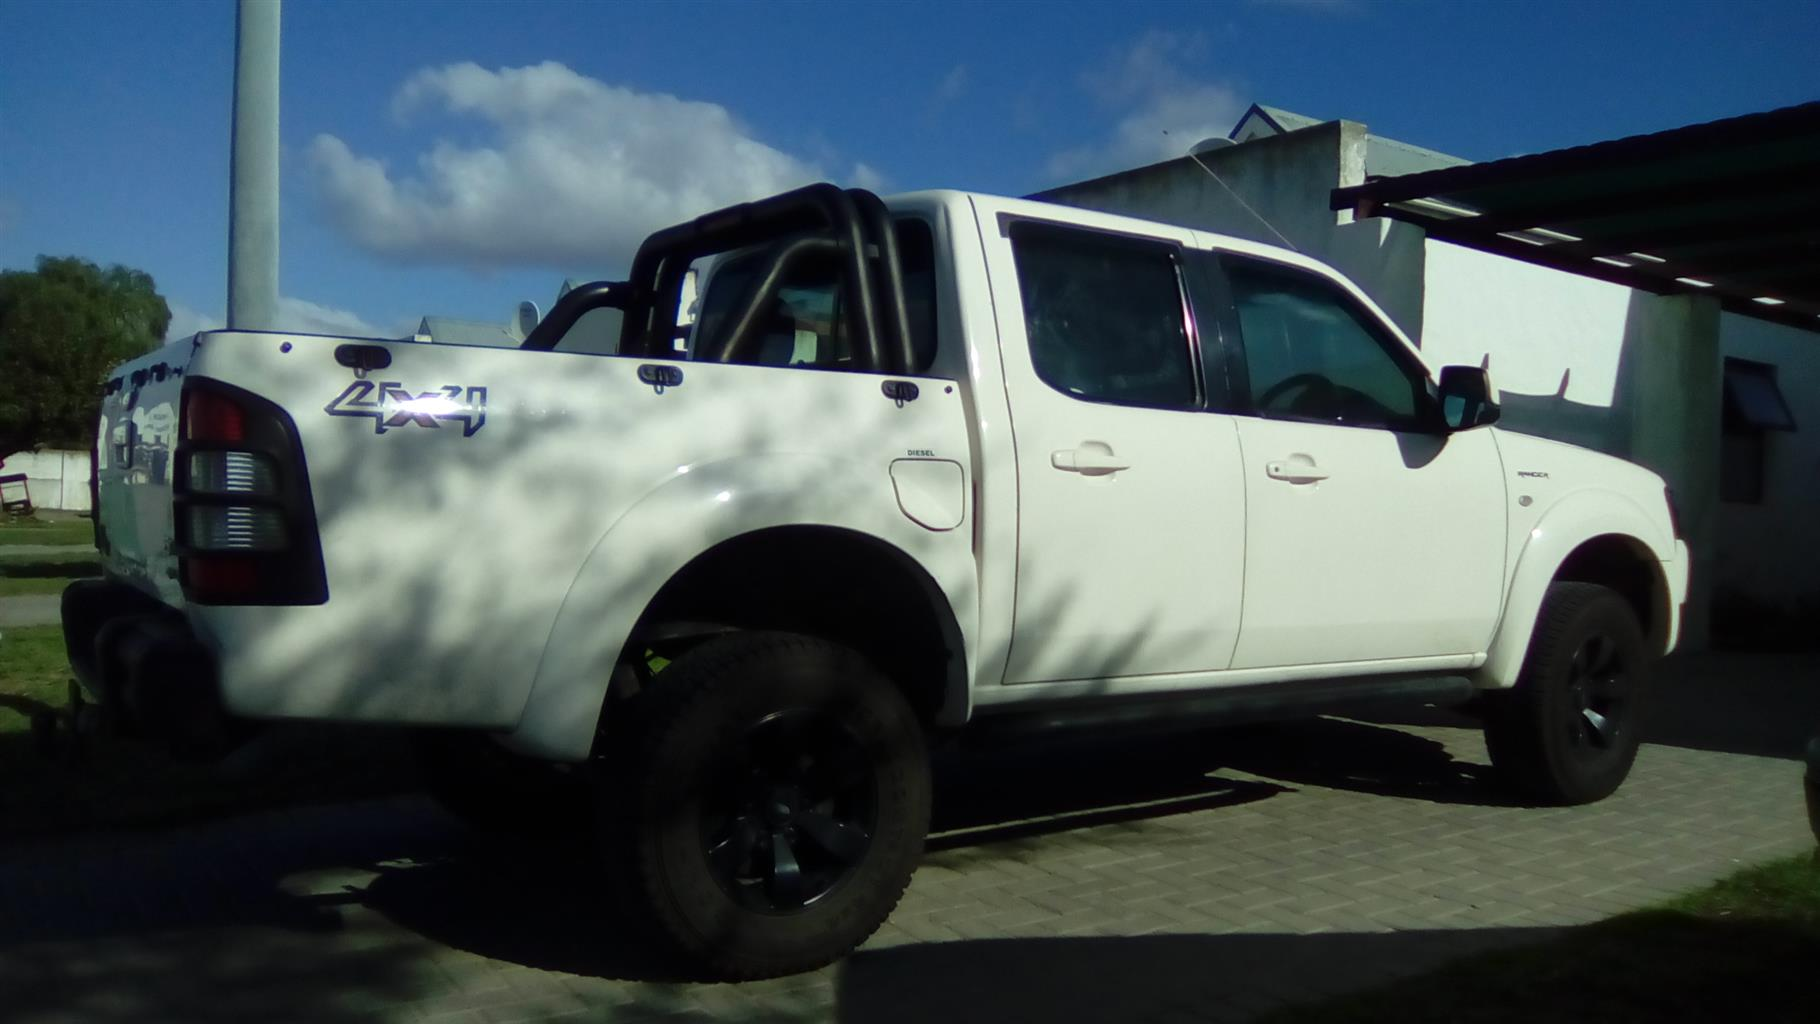 2008 Ford Ranger 2.5TD double cab 4x4